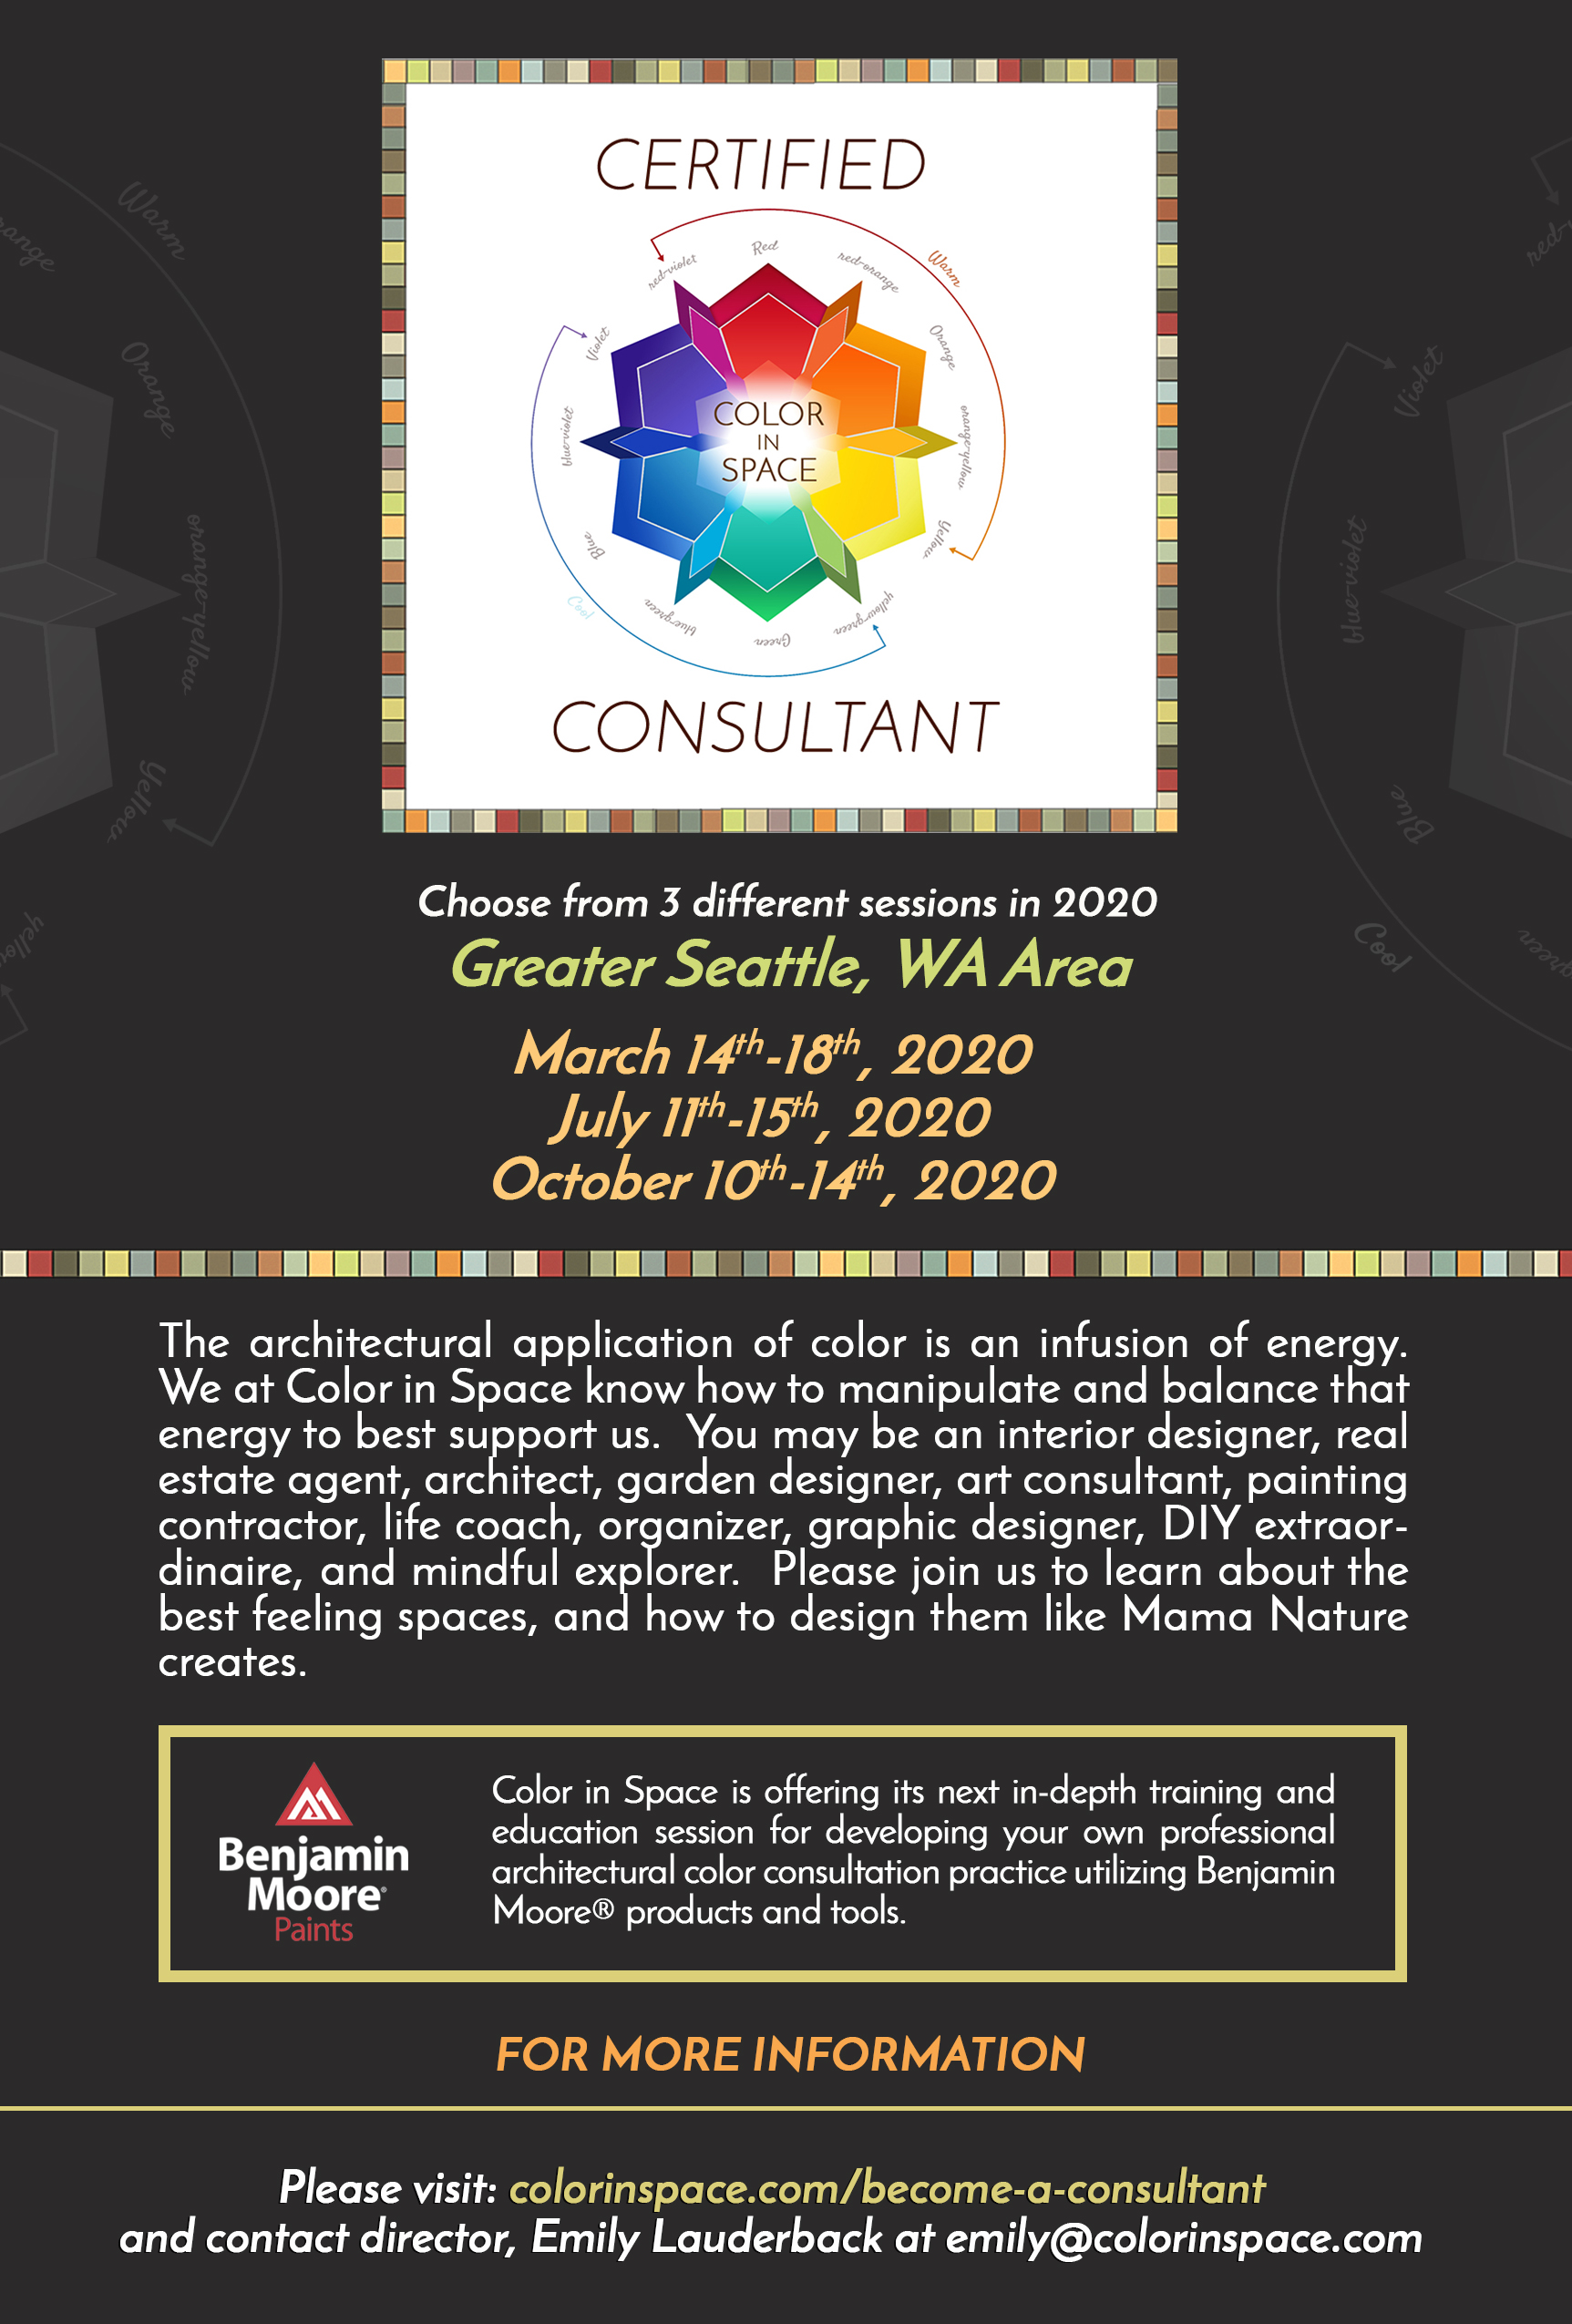 cis-consulting-2020-revised3.jpg